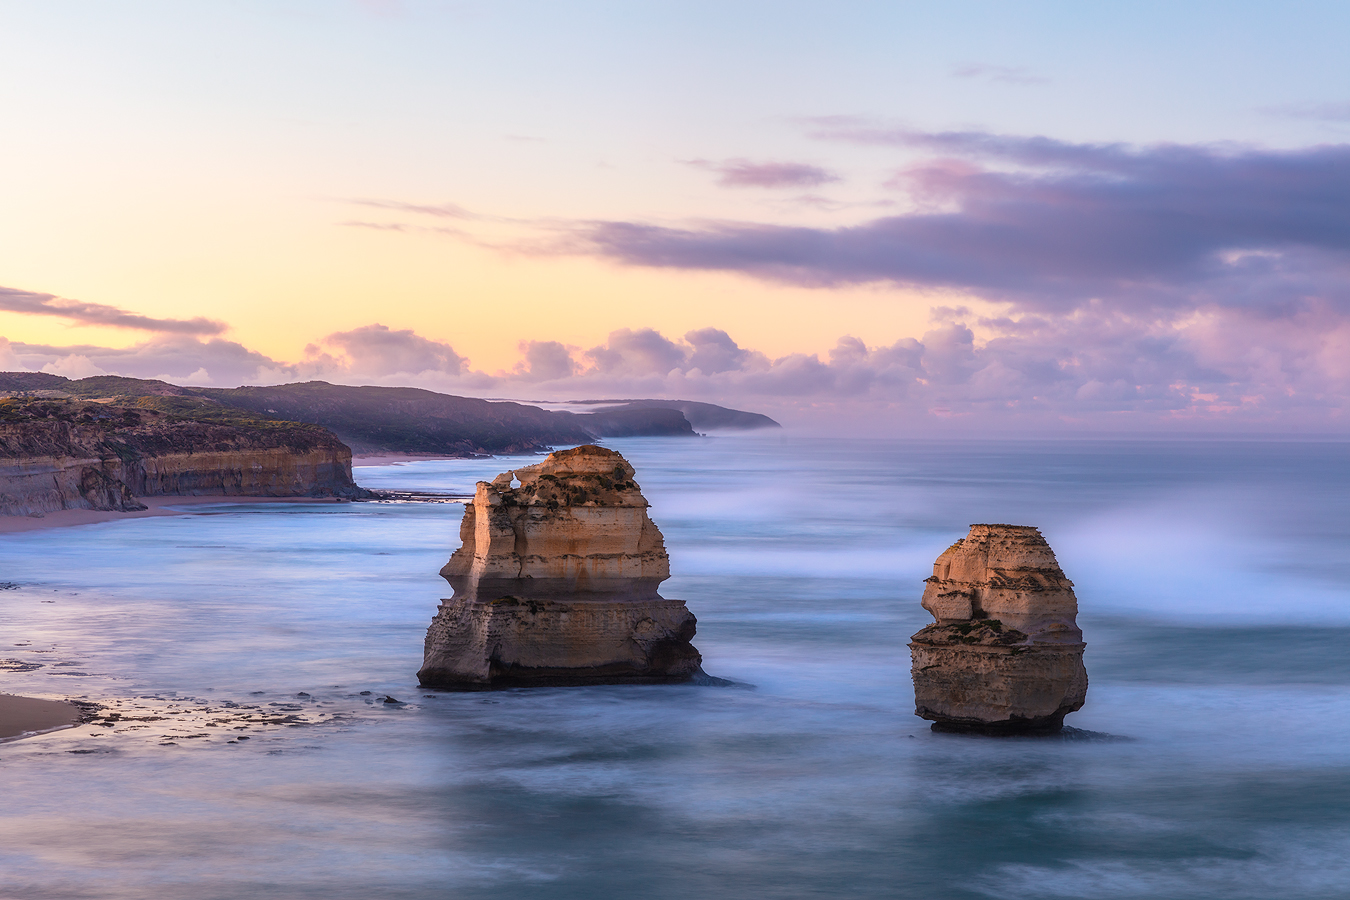 Sunrise at Gibson Steps - Twelve Apostles, Great Ocean Road, Australia | Fine Art for sale by We Are Raw Photography Tours